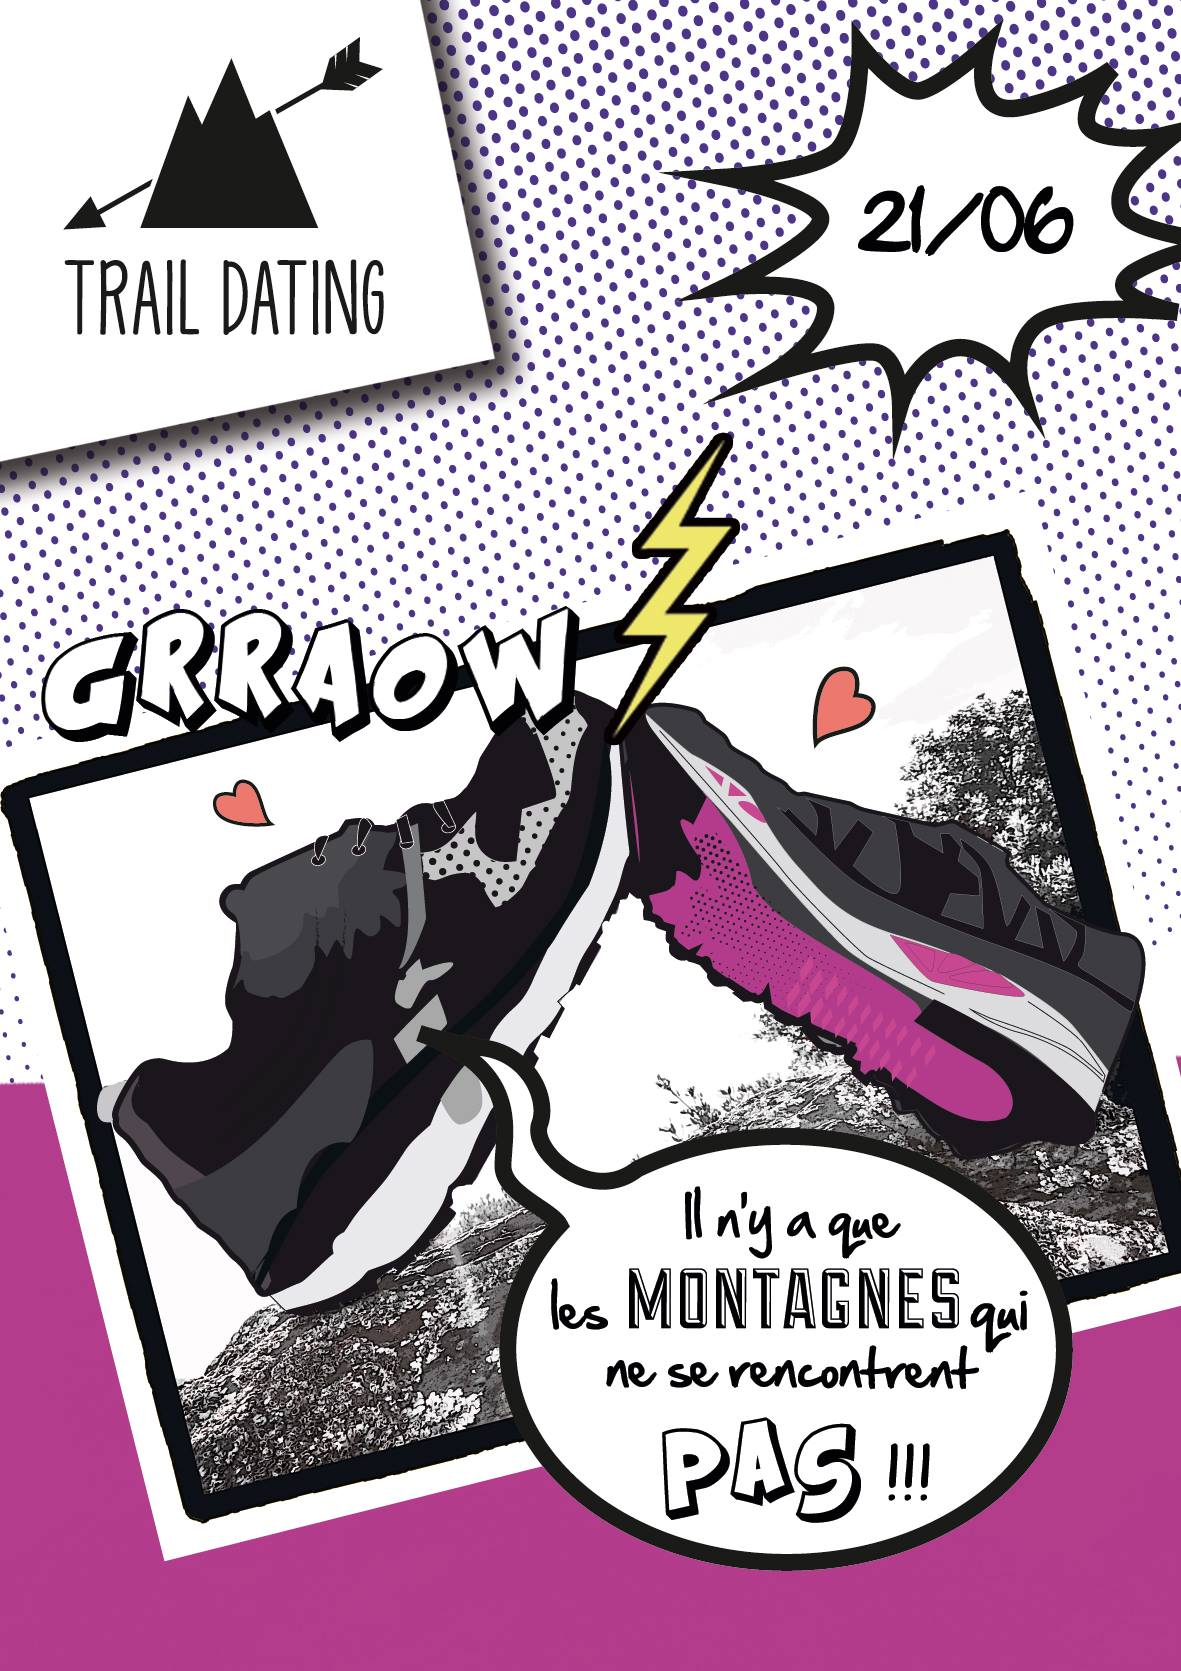 Dating trail